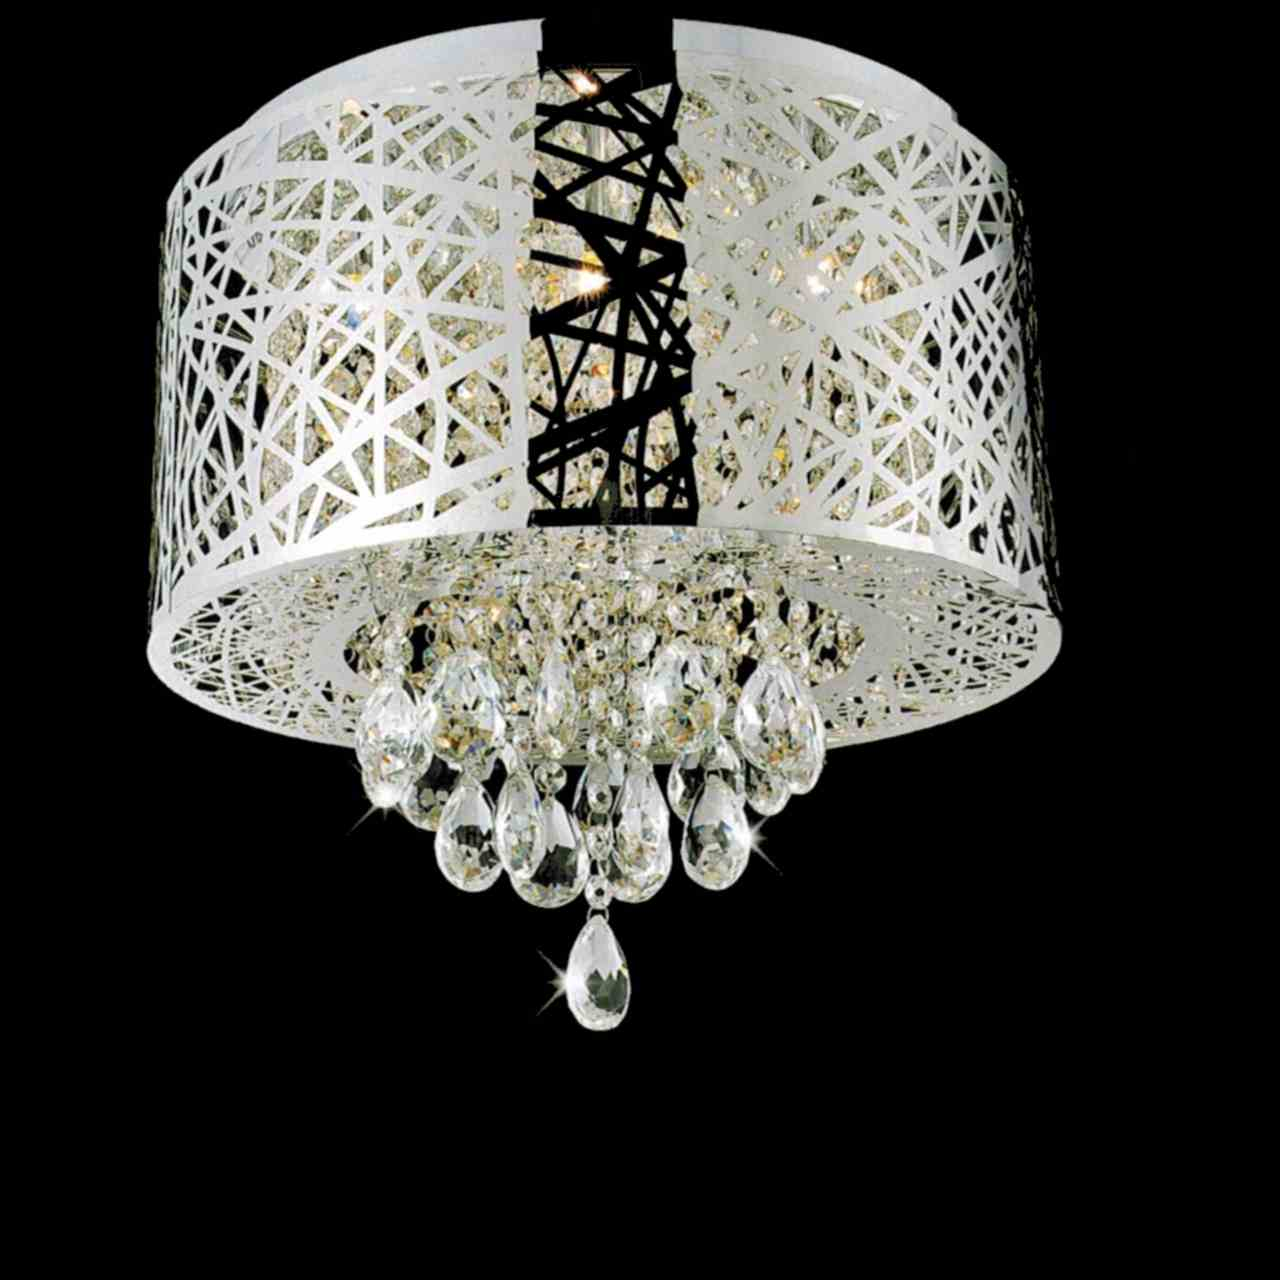 drum shade crystal round flush mount chandelier stainless steel 6